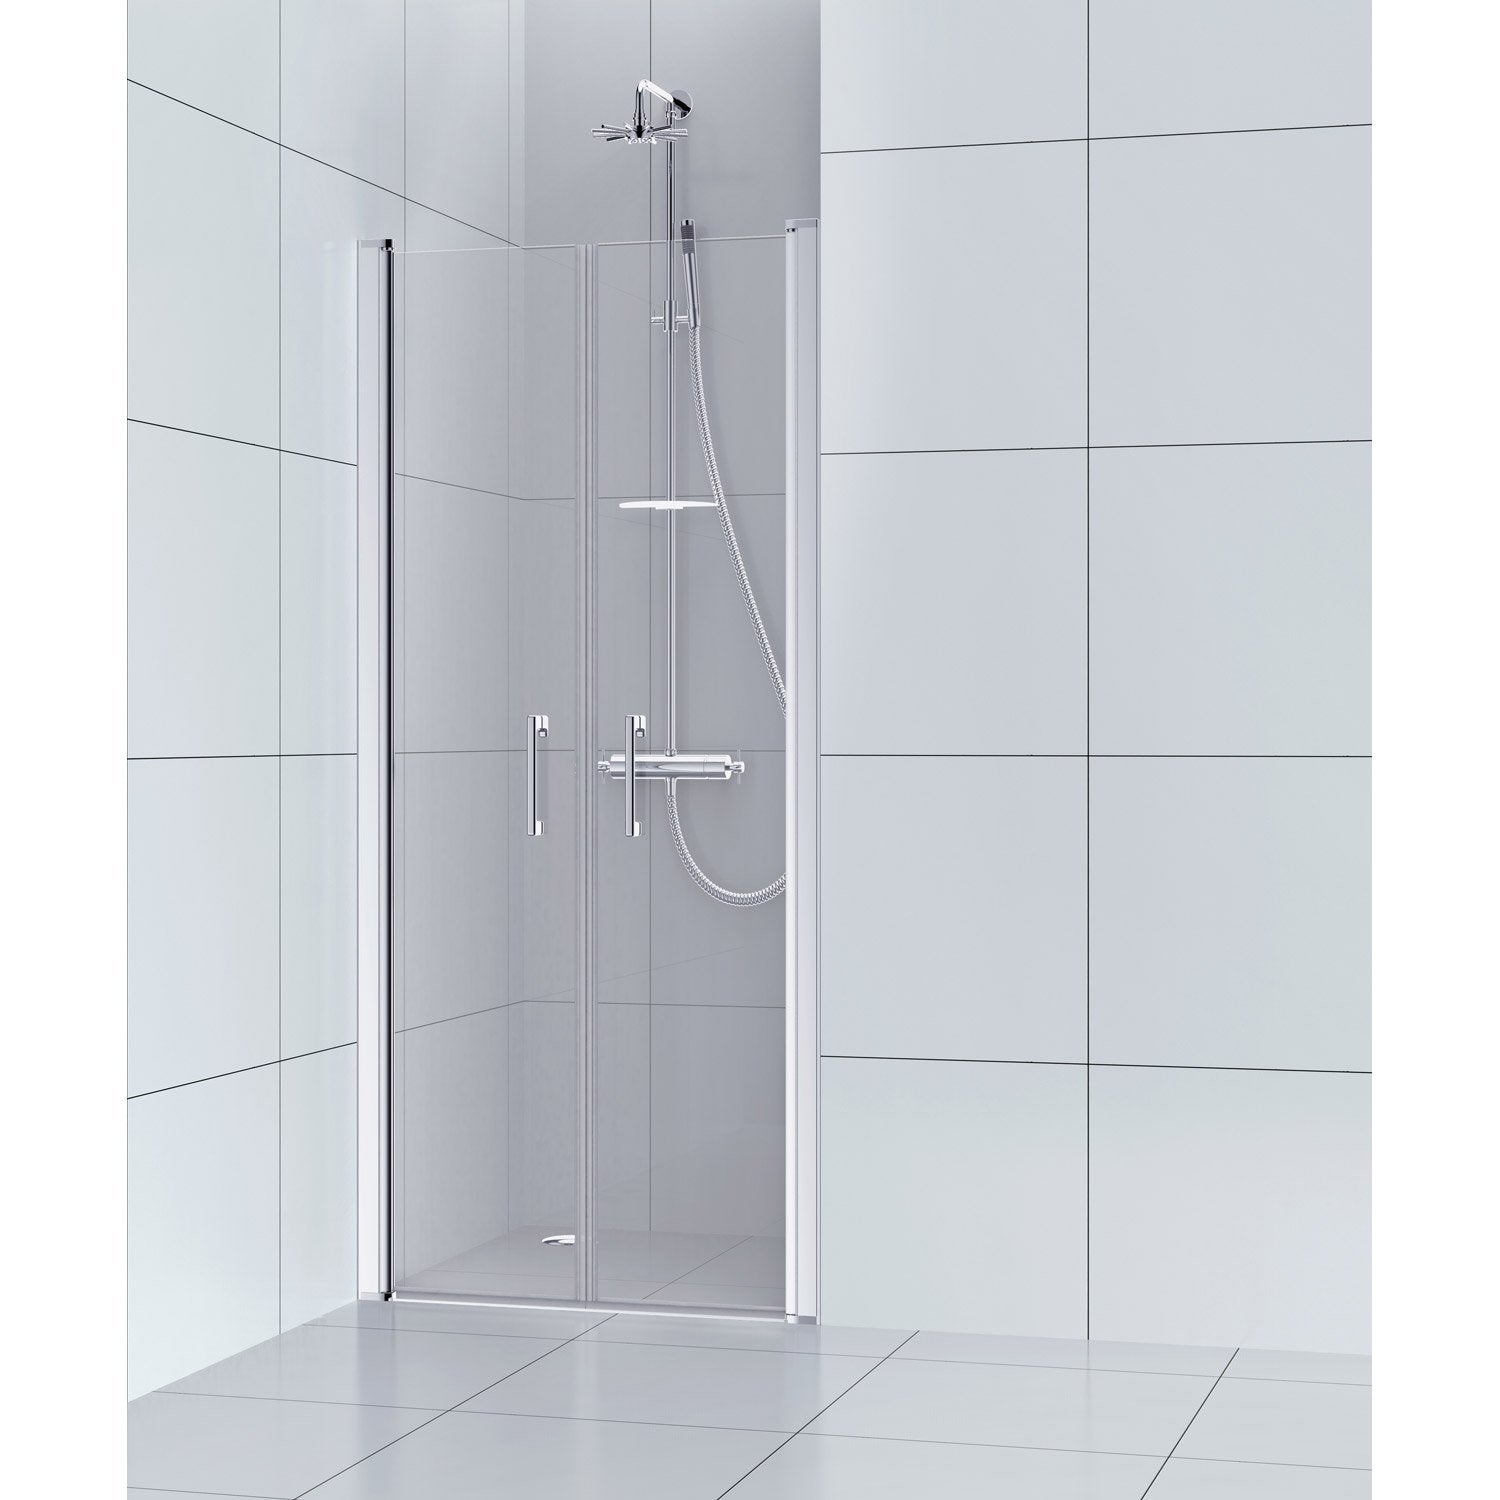 Porte de douche battante 80 cm transparent remix leroy for Porte de douche hauteur 180